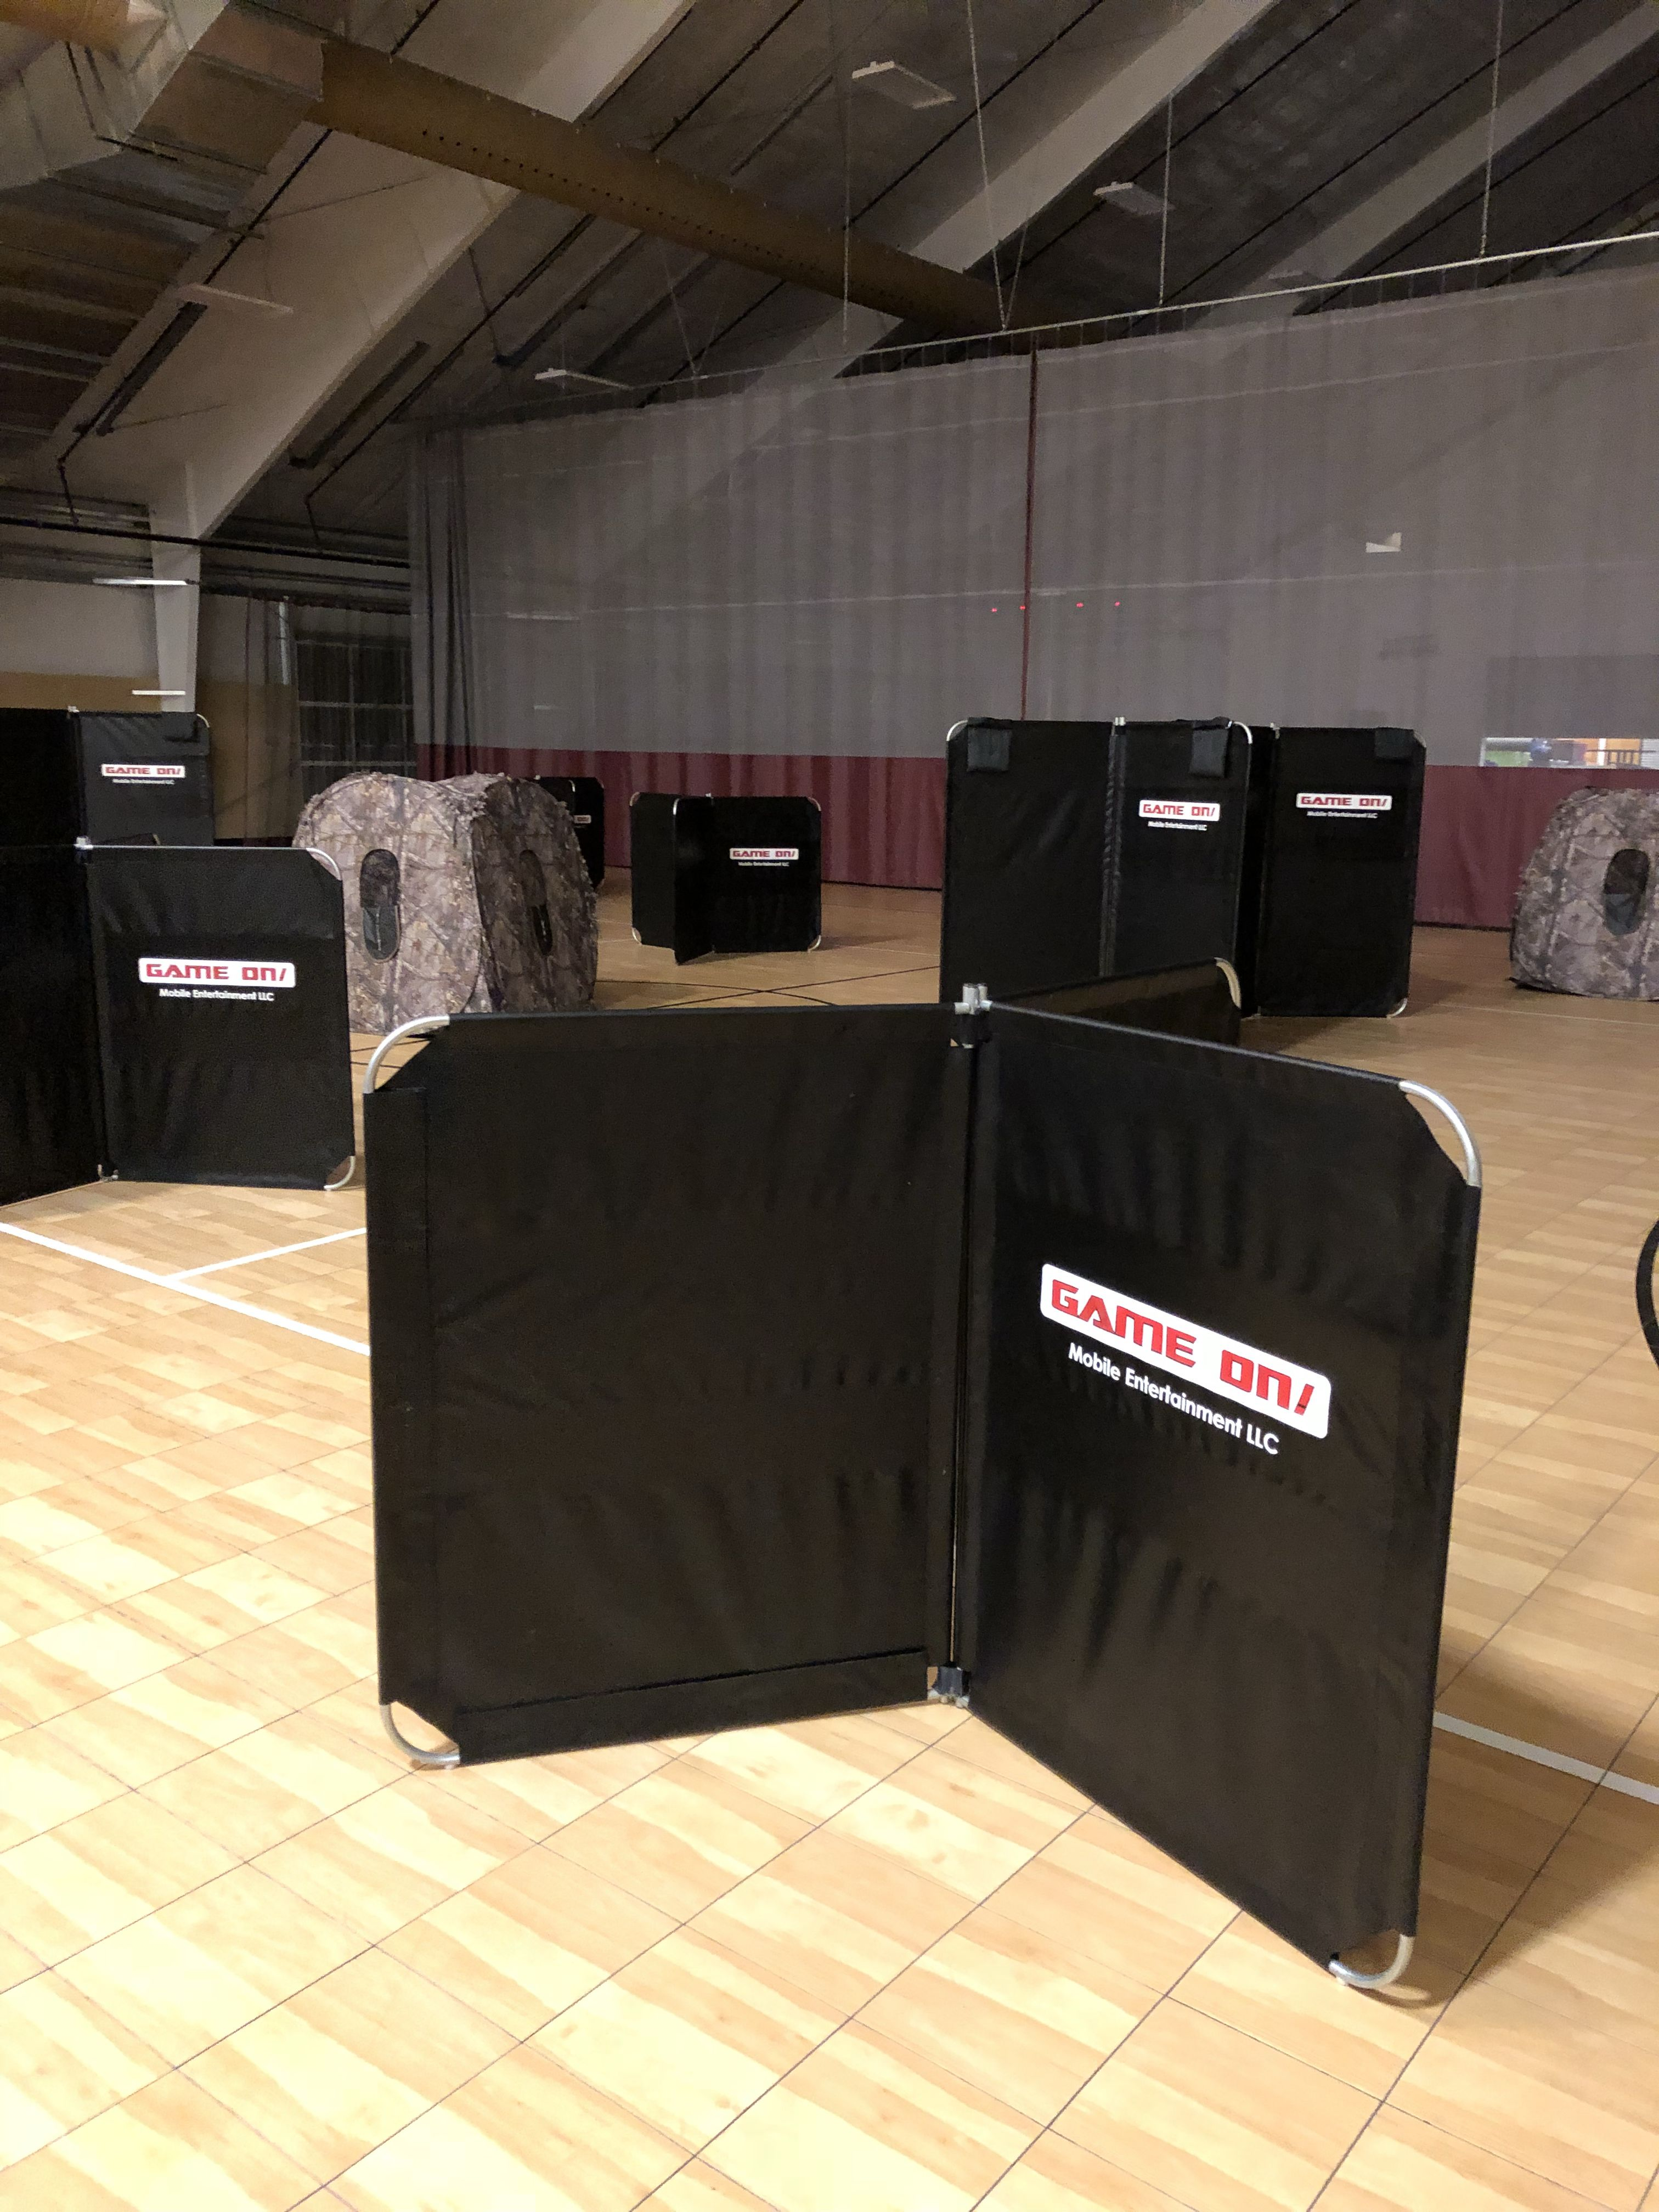 Check Out Our New Laser Tag Barriers They Give You A Whole New Experience With Tactical Laser Tag Book Your Mobile Laser Tag Party Laser Tag Tactical Laser